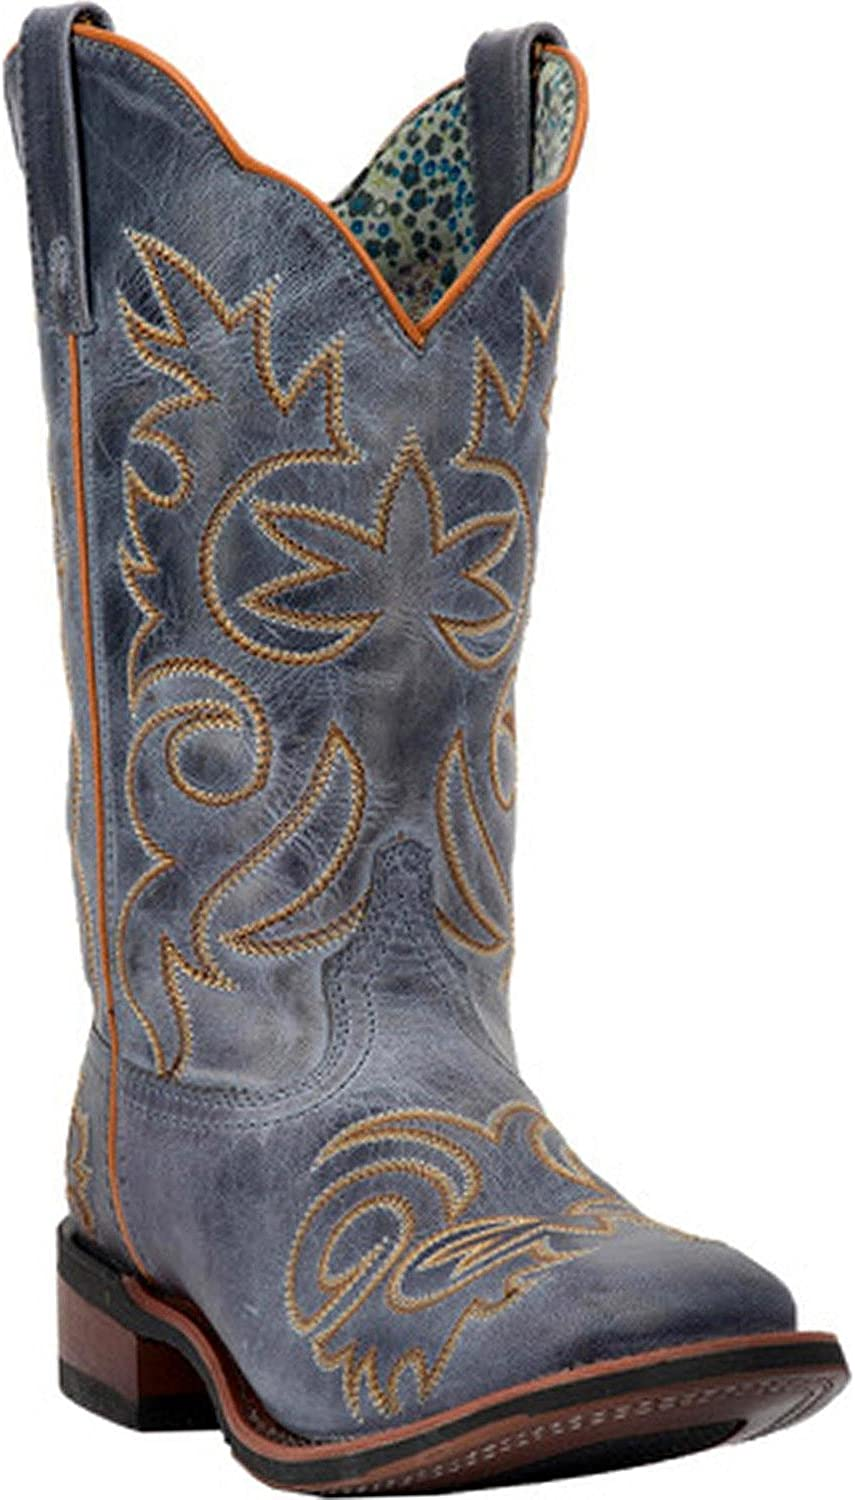 Laredo Women's Ella Vintage Navy Stockman Boot Square Toe - 5676